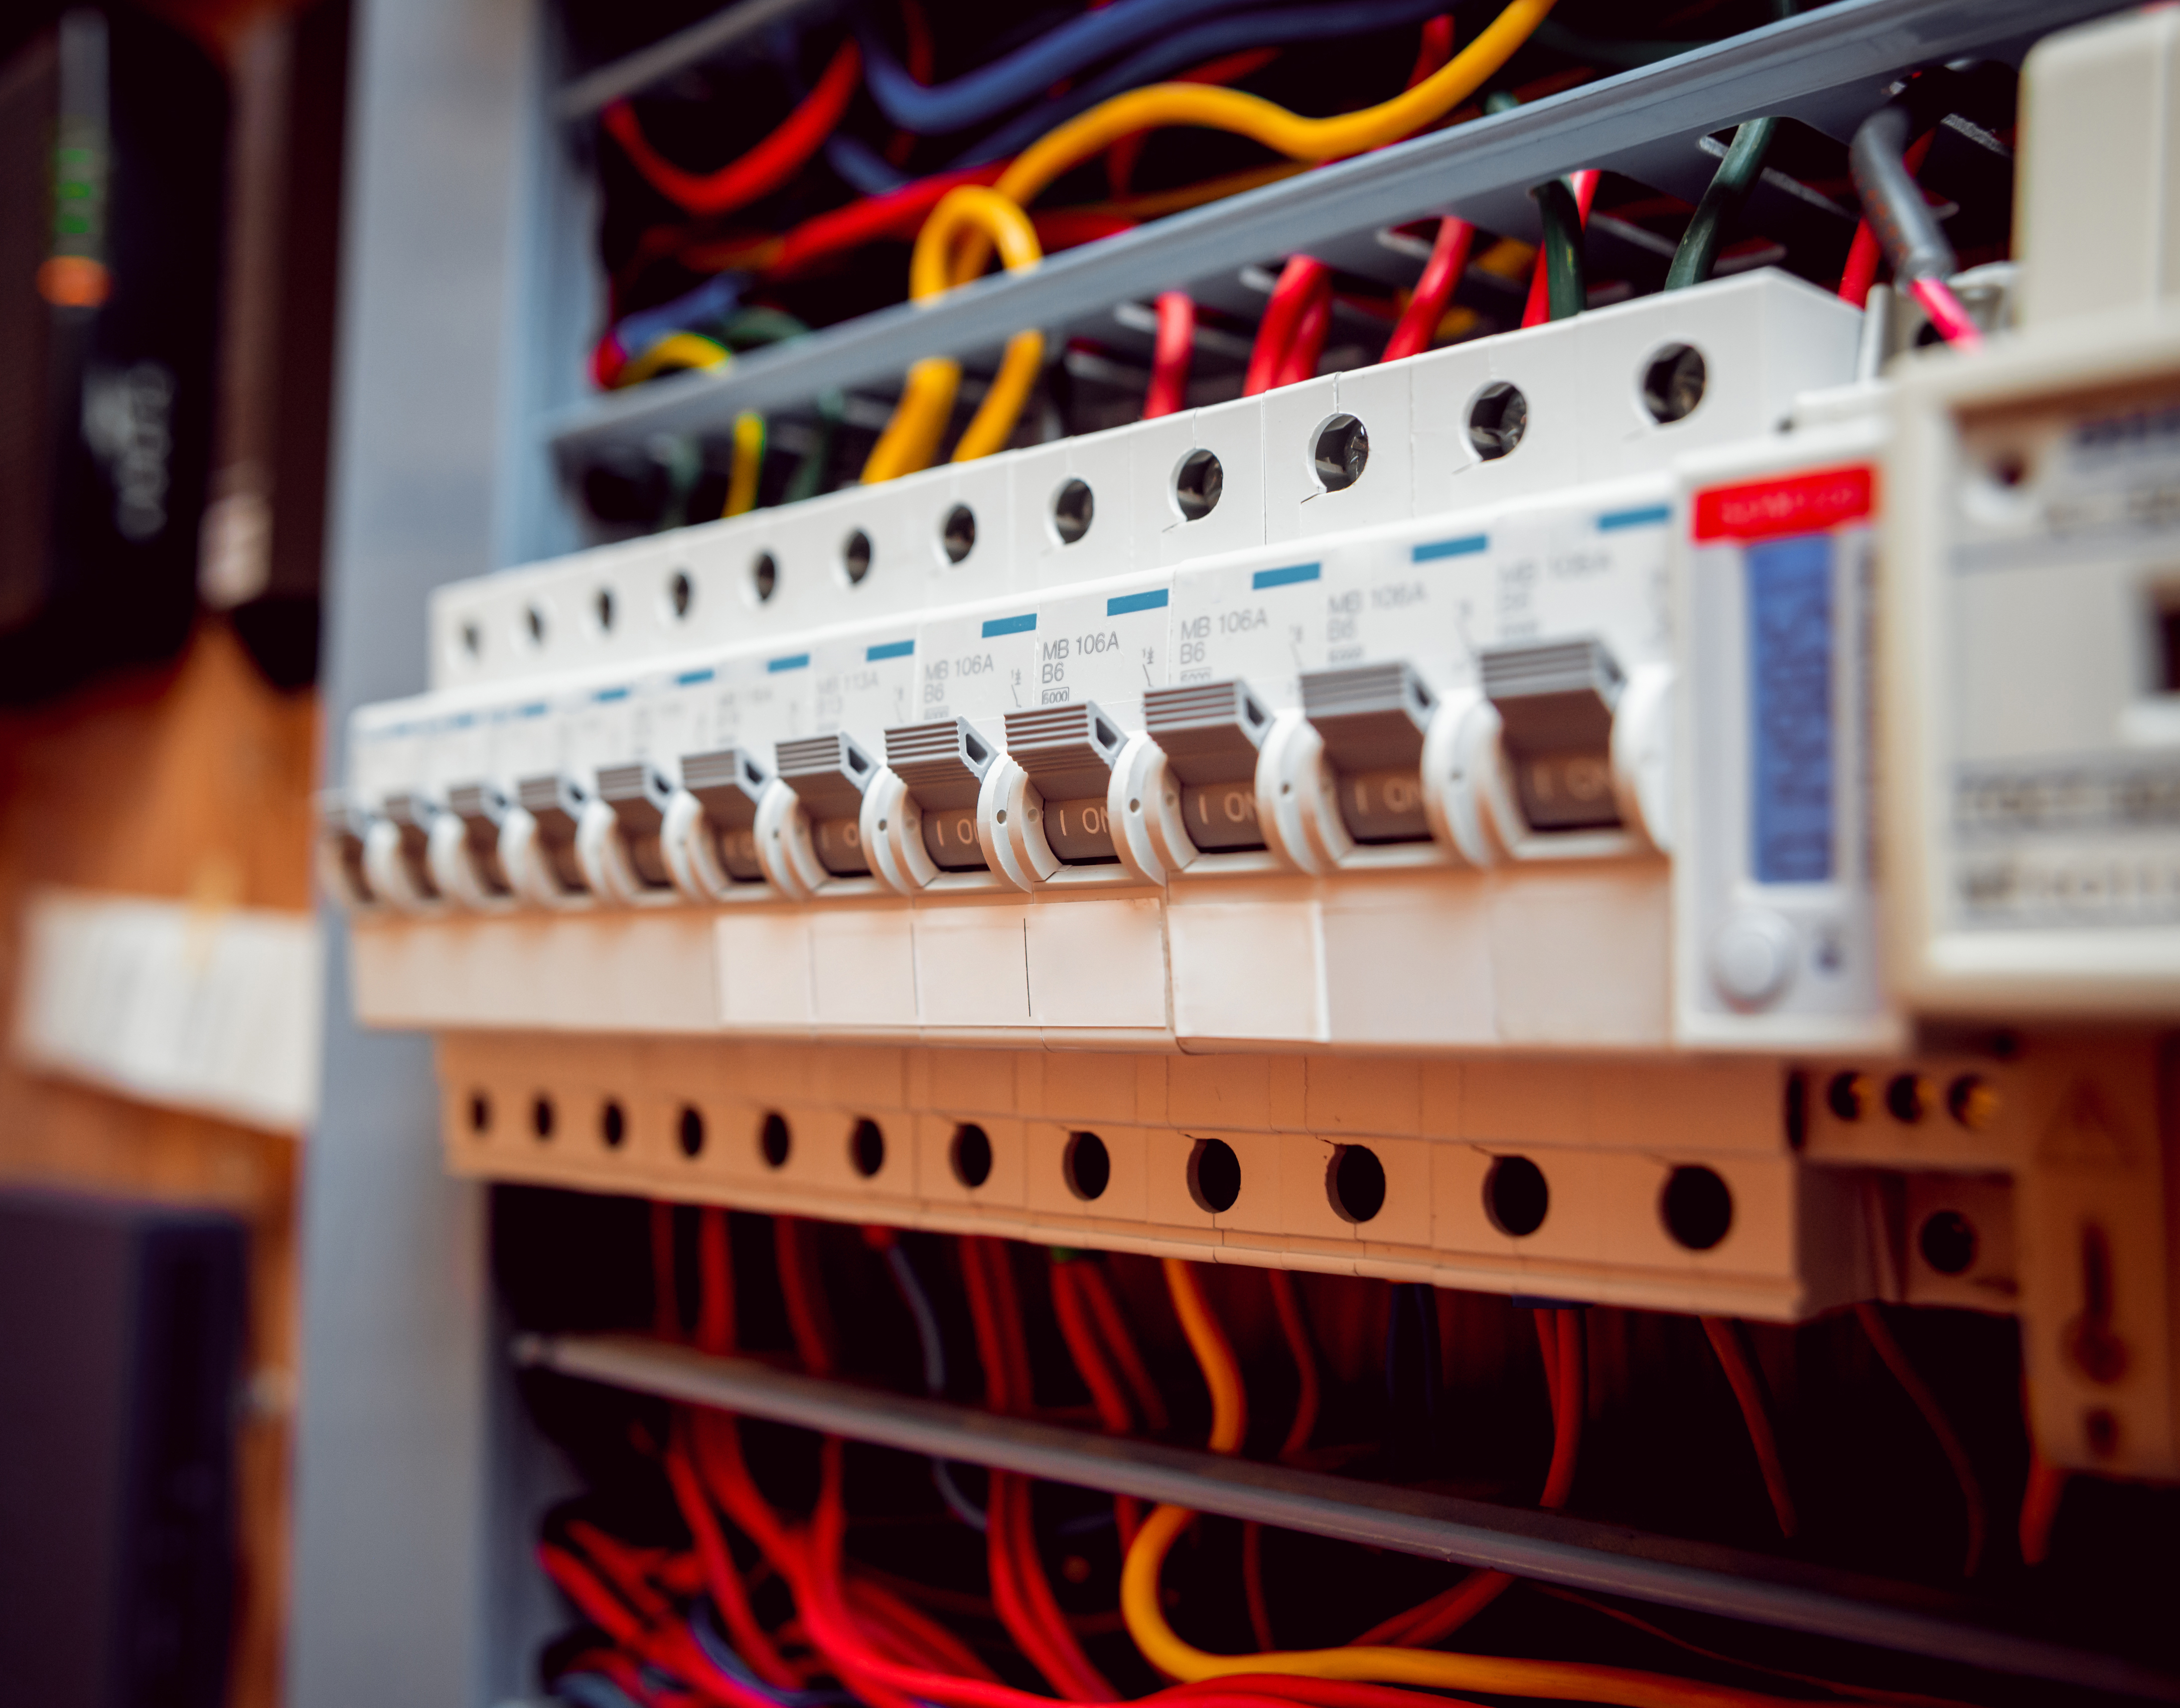 480 Volt Electric Panel Clearance Requirements | Career Trend  Foot Clearance Electrical Panel on